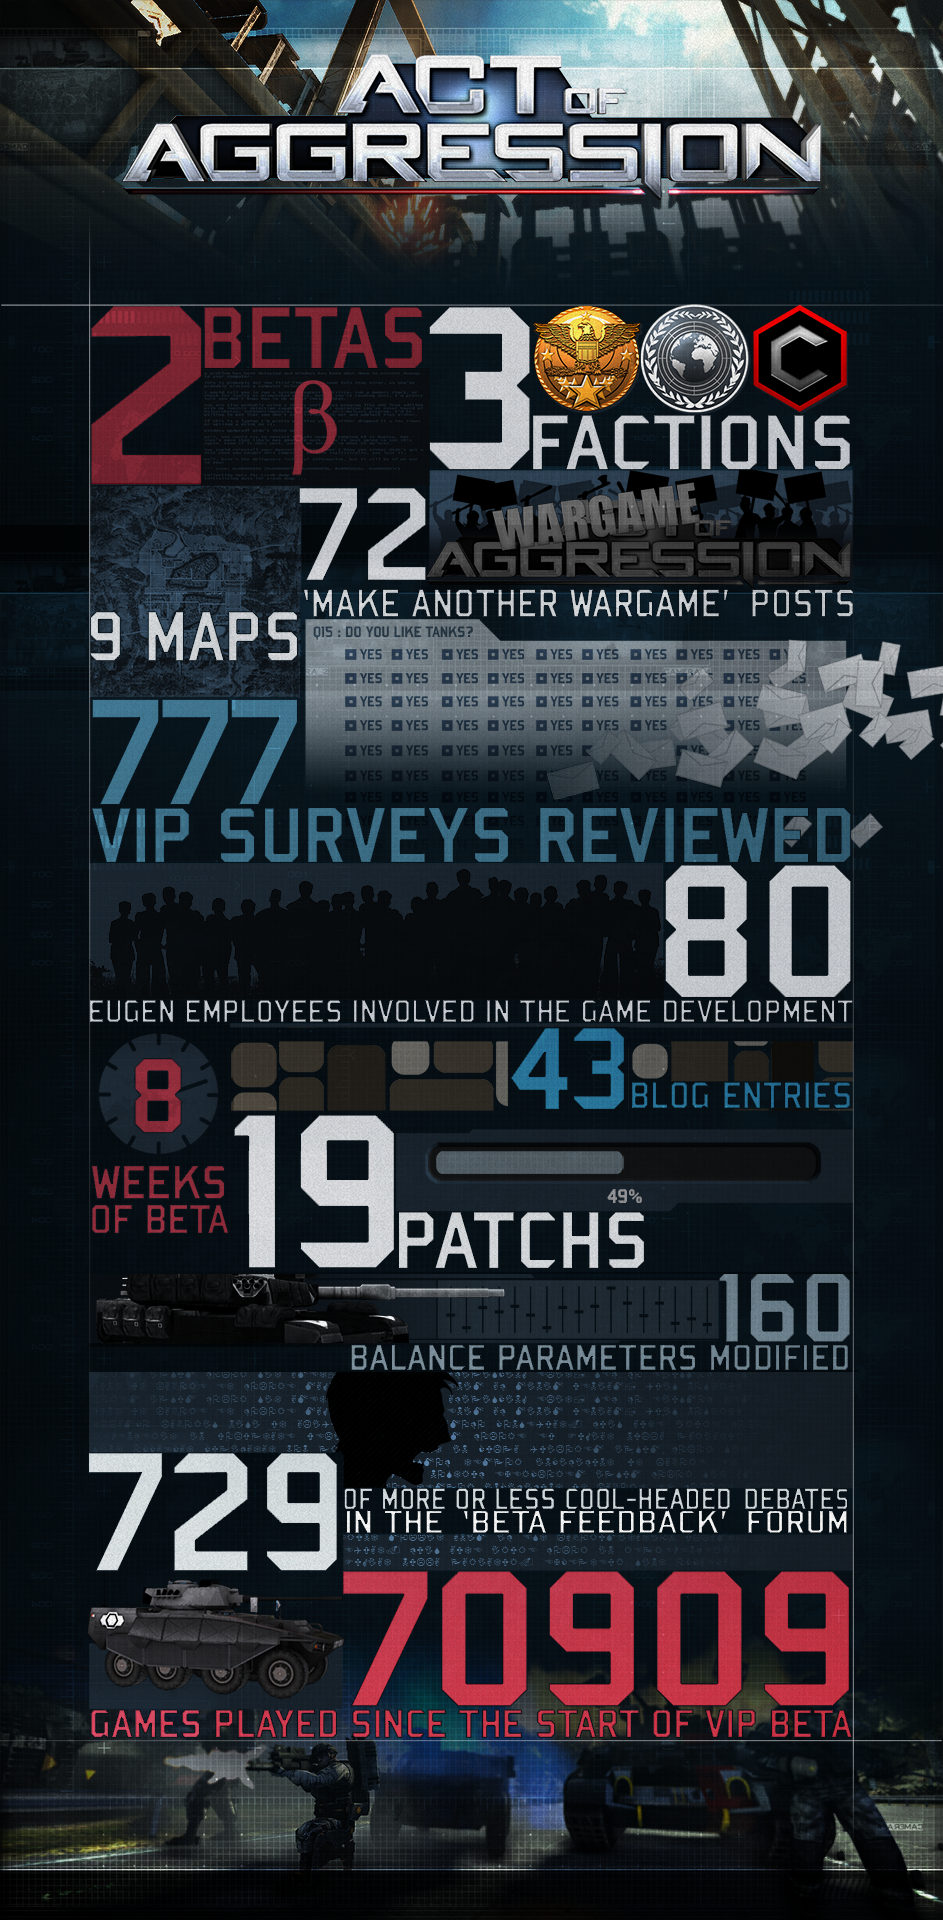 Act of Aggression's Betas in numbers …